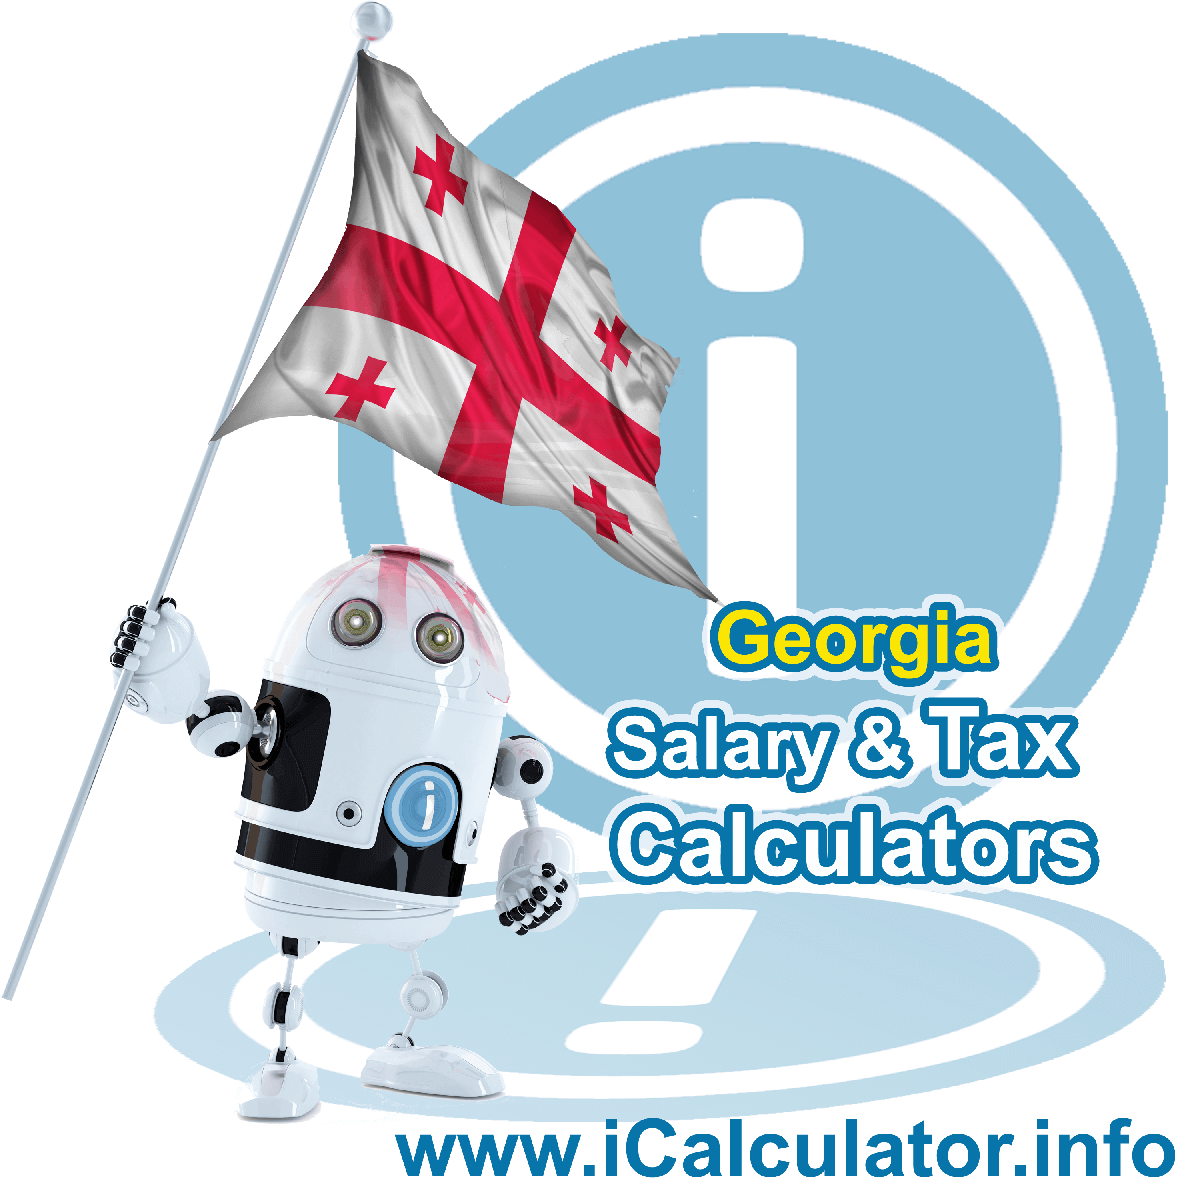 Georgia Wage Calculator. This image shows the Georgia flag and information relating to the tax formula for the Georgia Tax Calculator